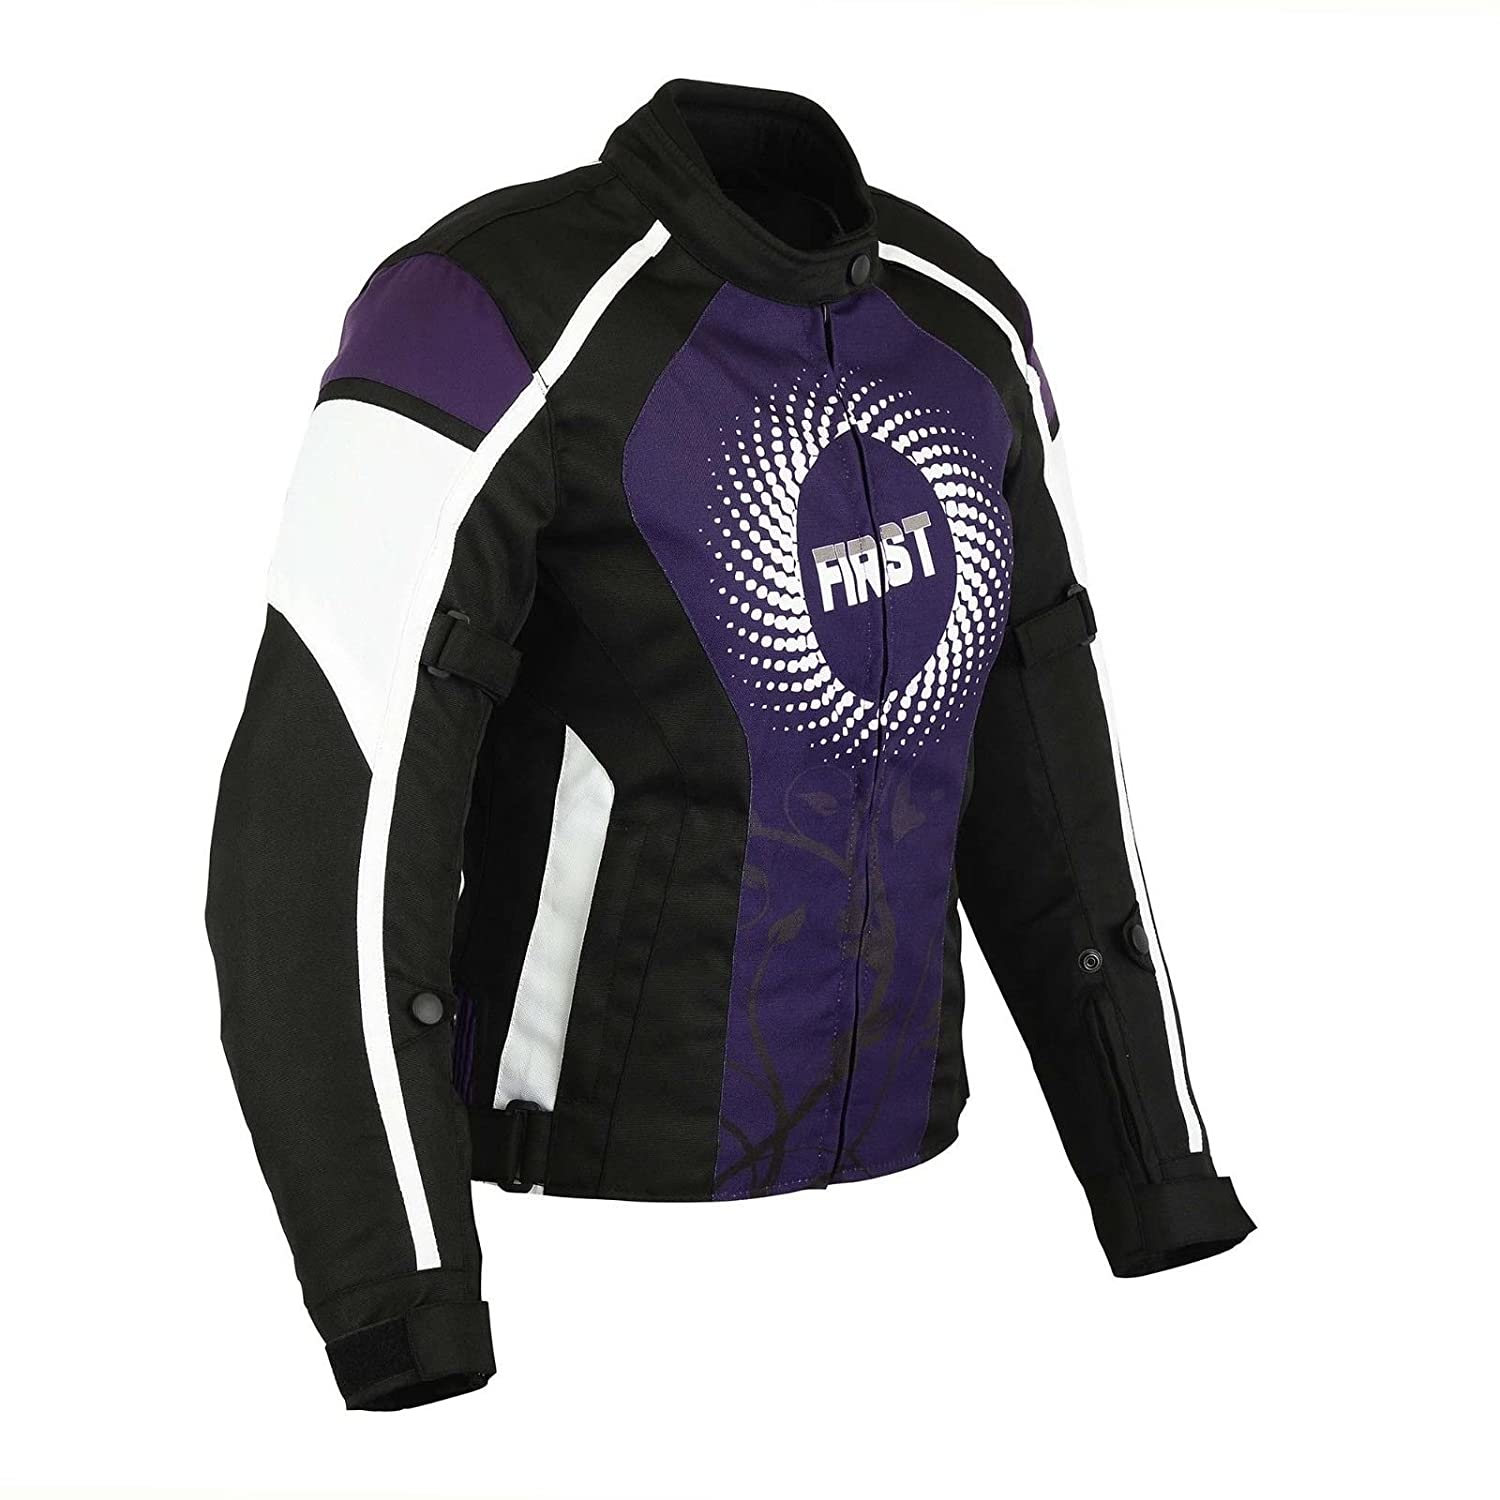 All Weather Ladies Motorbike Jacket Women Waterproof Motorcycle Gears Clothing in Cordura Fabric with Armours Red Spiral Dotted First Textured